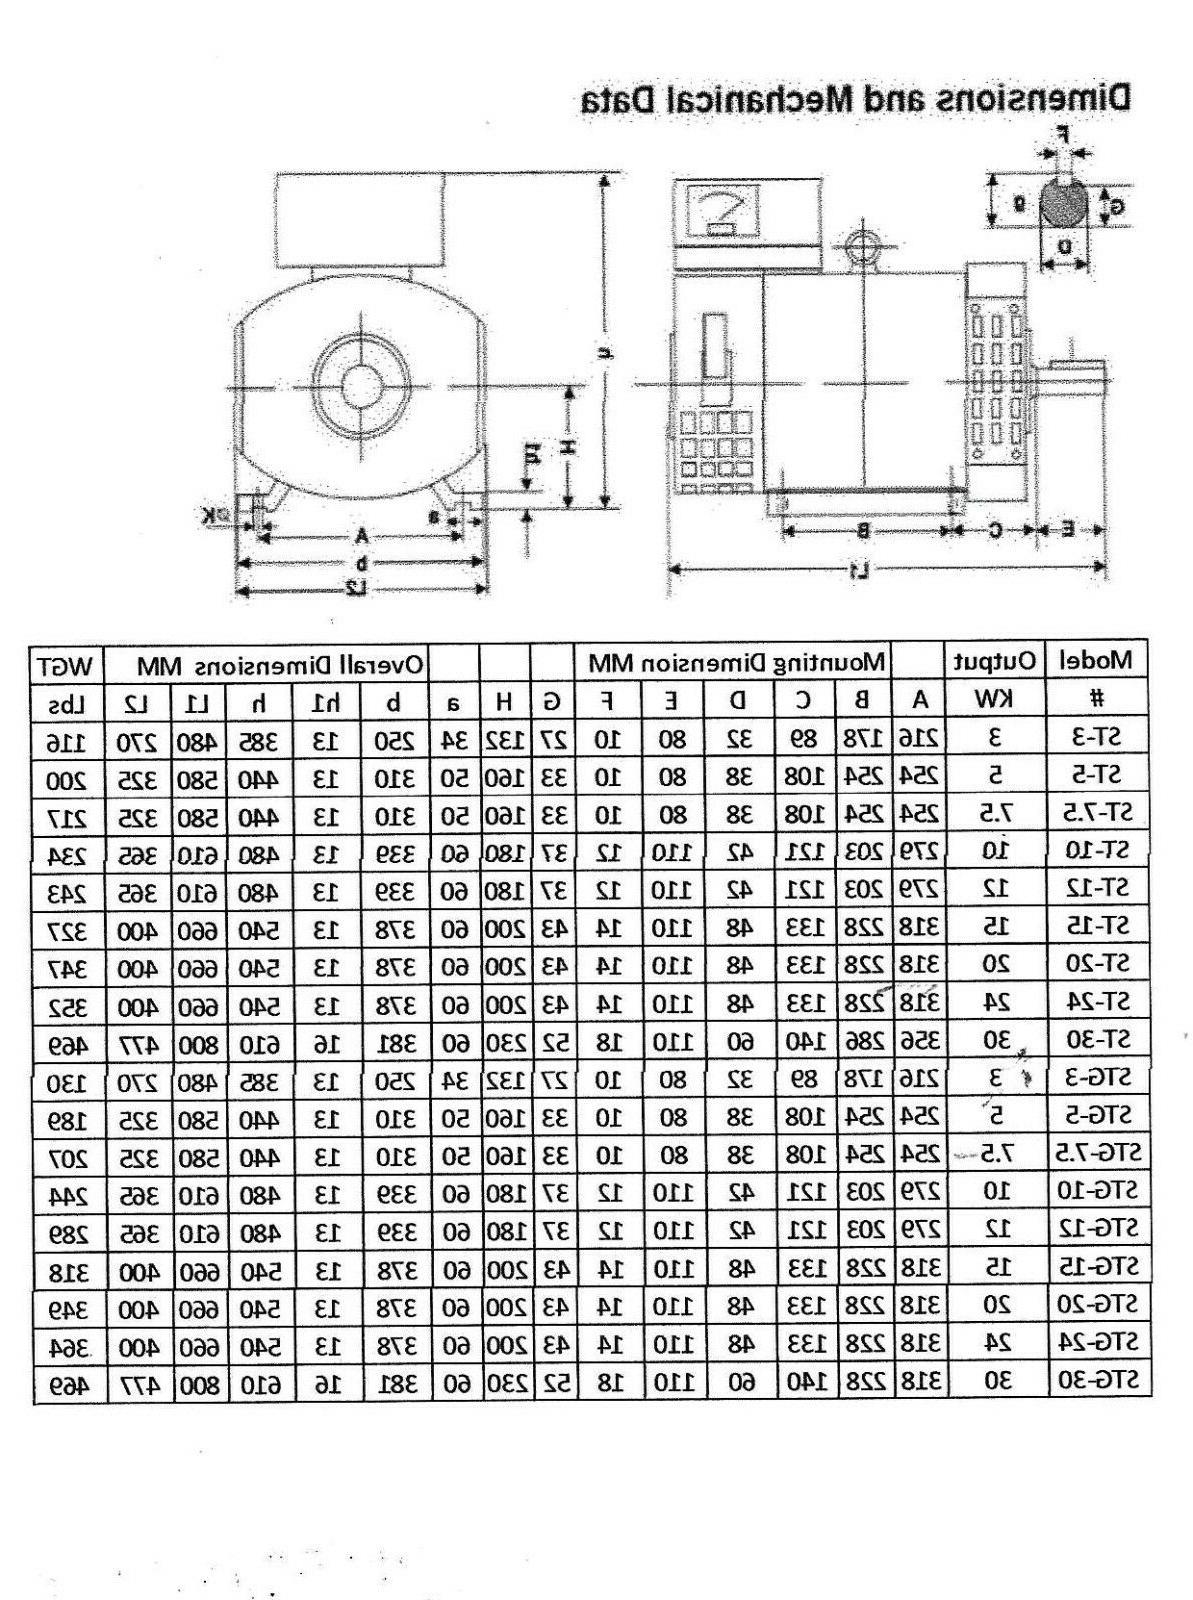 5KW 1 for or 120/240